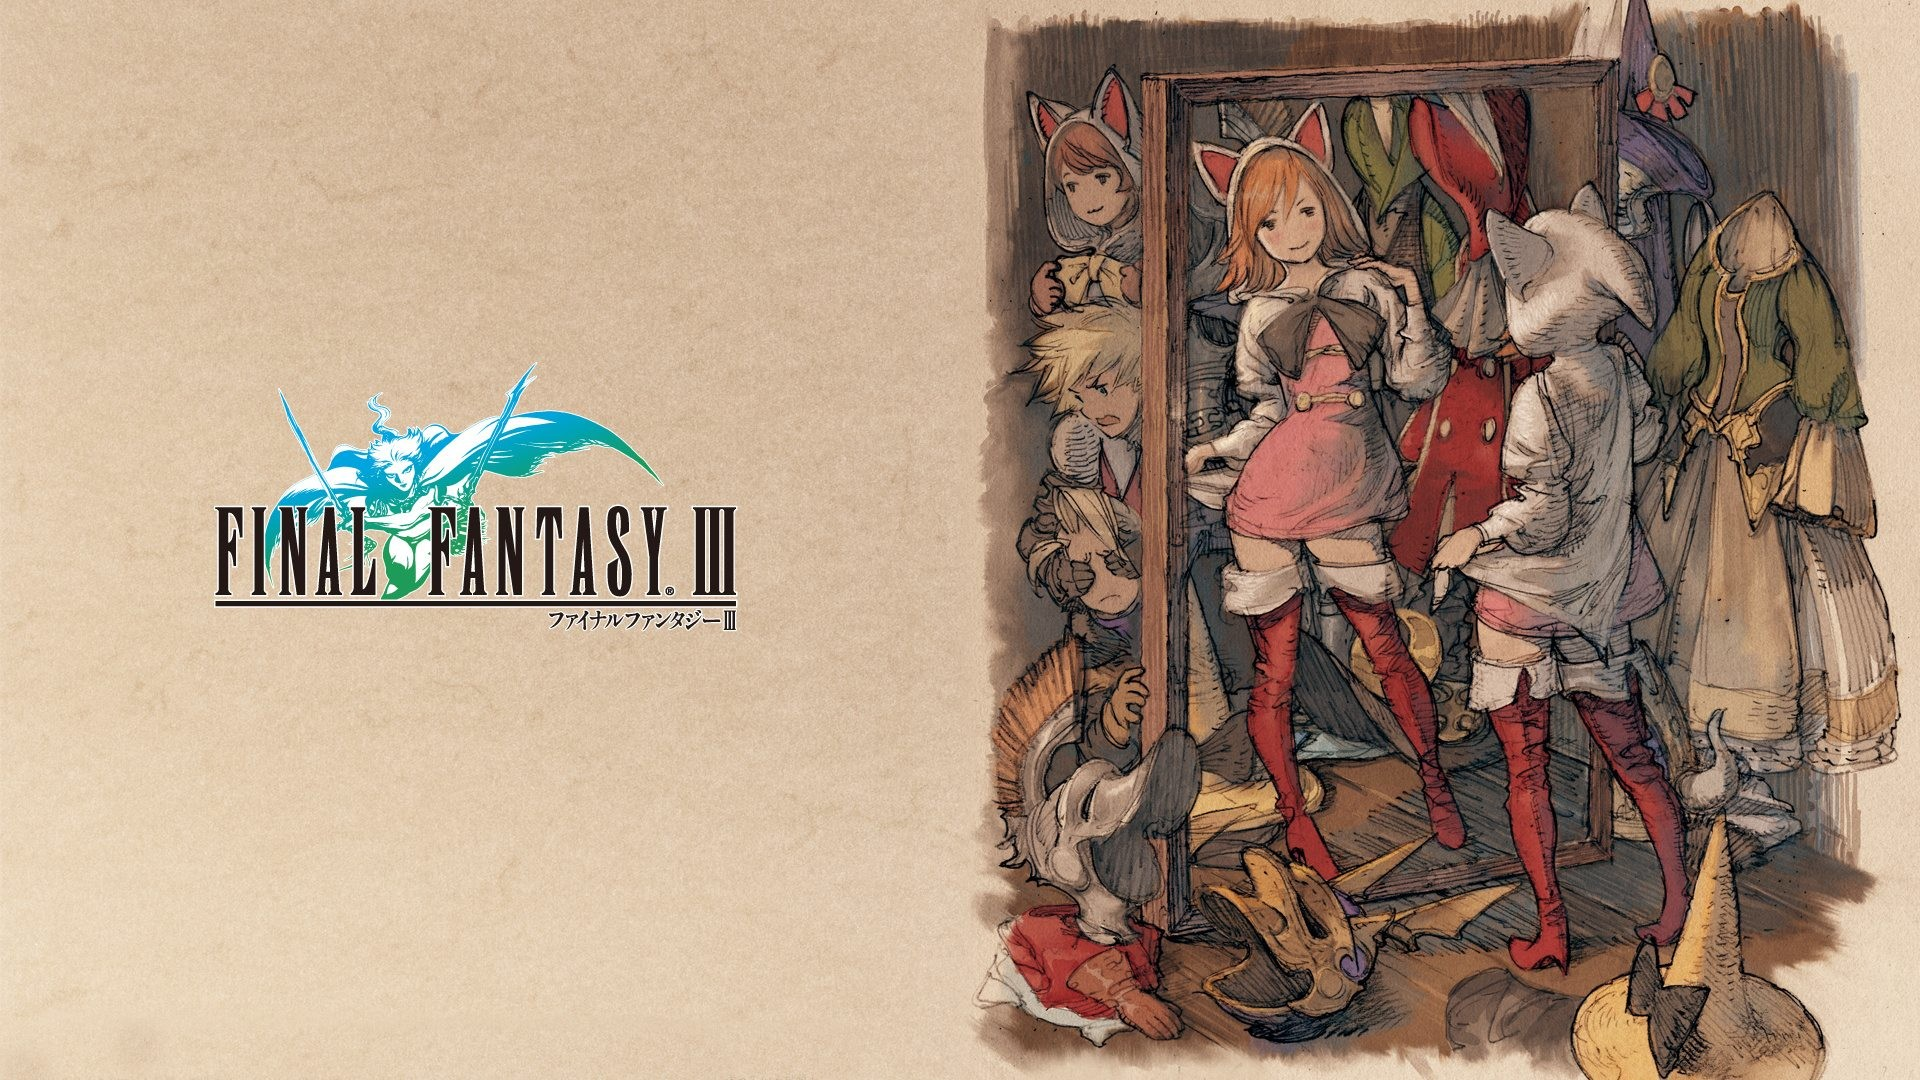 1920x1080 Wallpaper #16 Wallpaper from Final Fantasy III